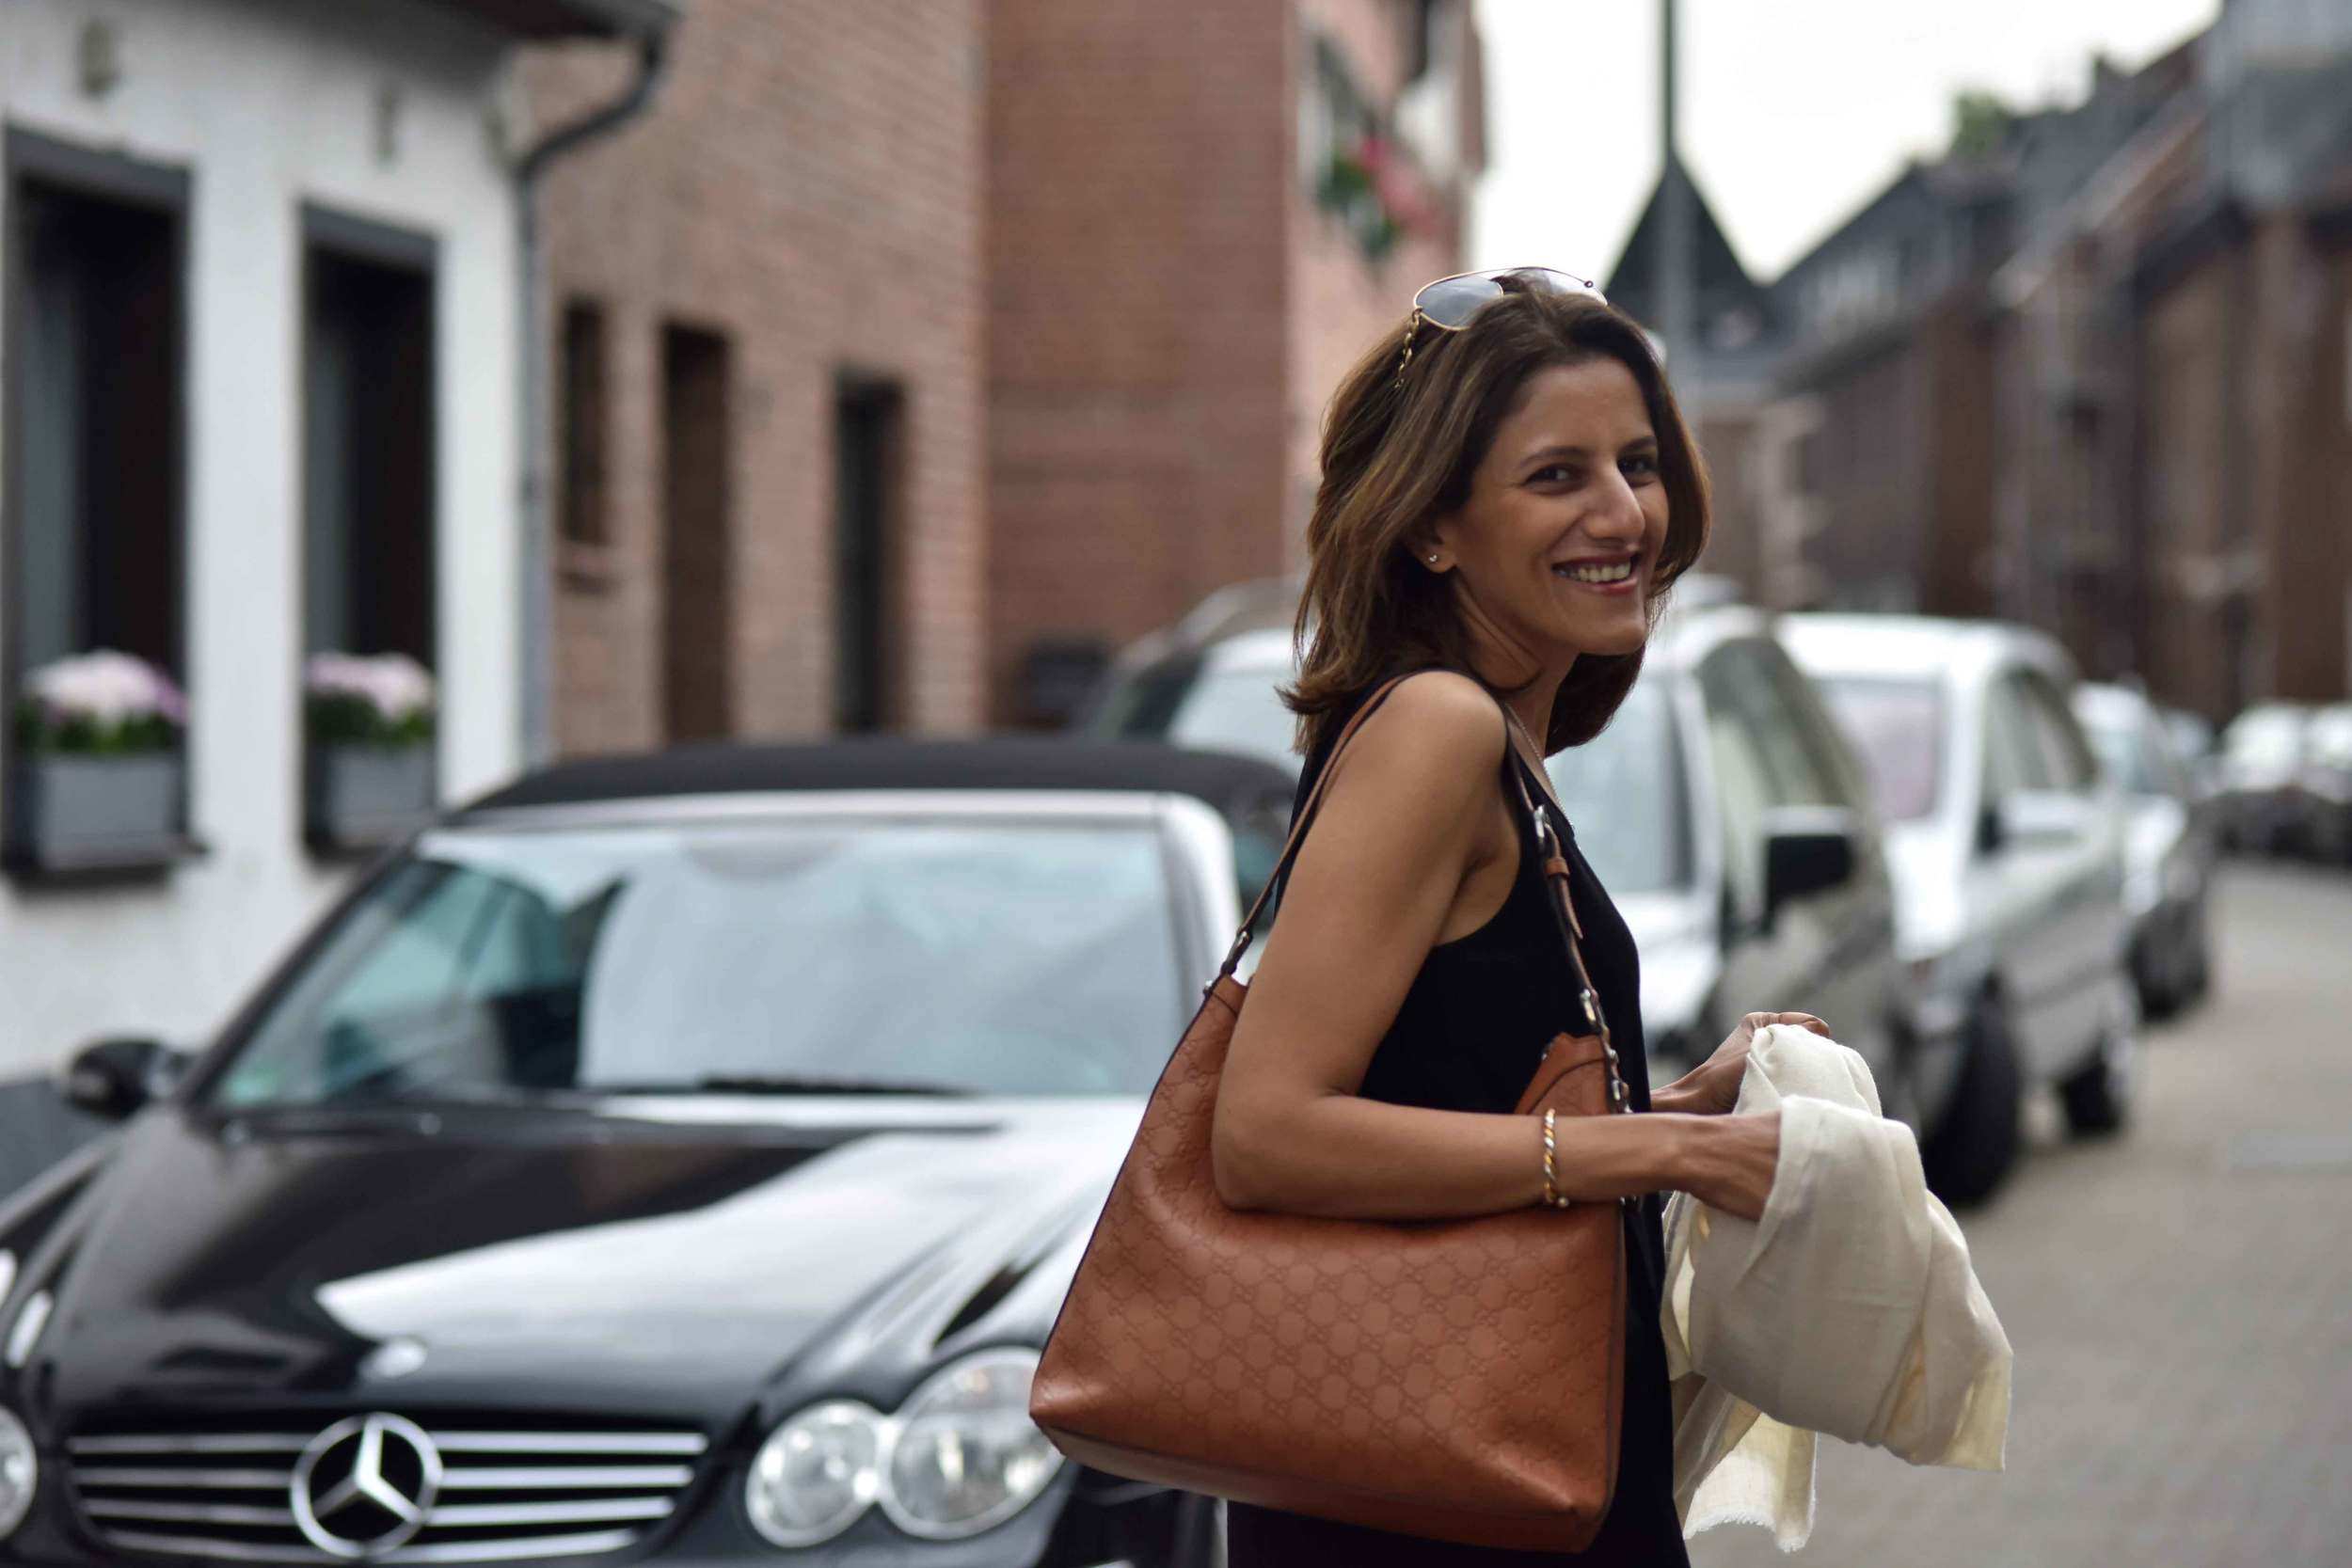 Ready to step out, wearing Eileen Fisher black tank dress in viscose jersey, little black dress, Gucci handbag. Image©sourcingstyle.com, Photo: Nicola Nolting.